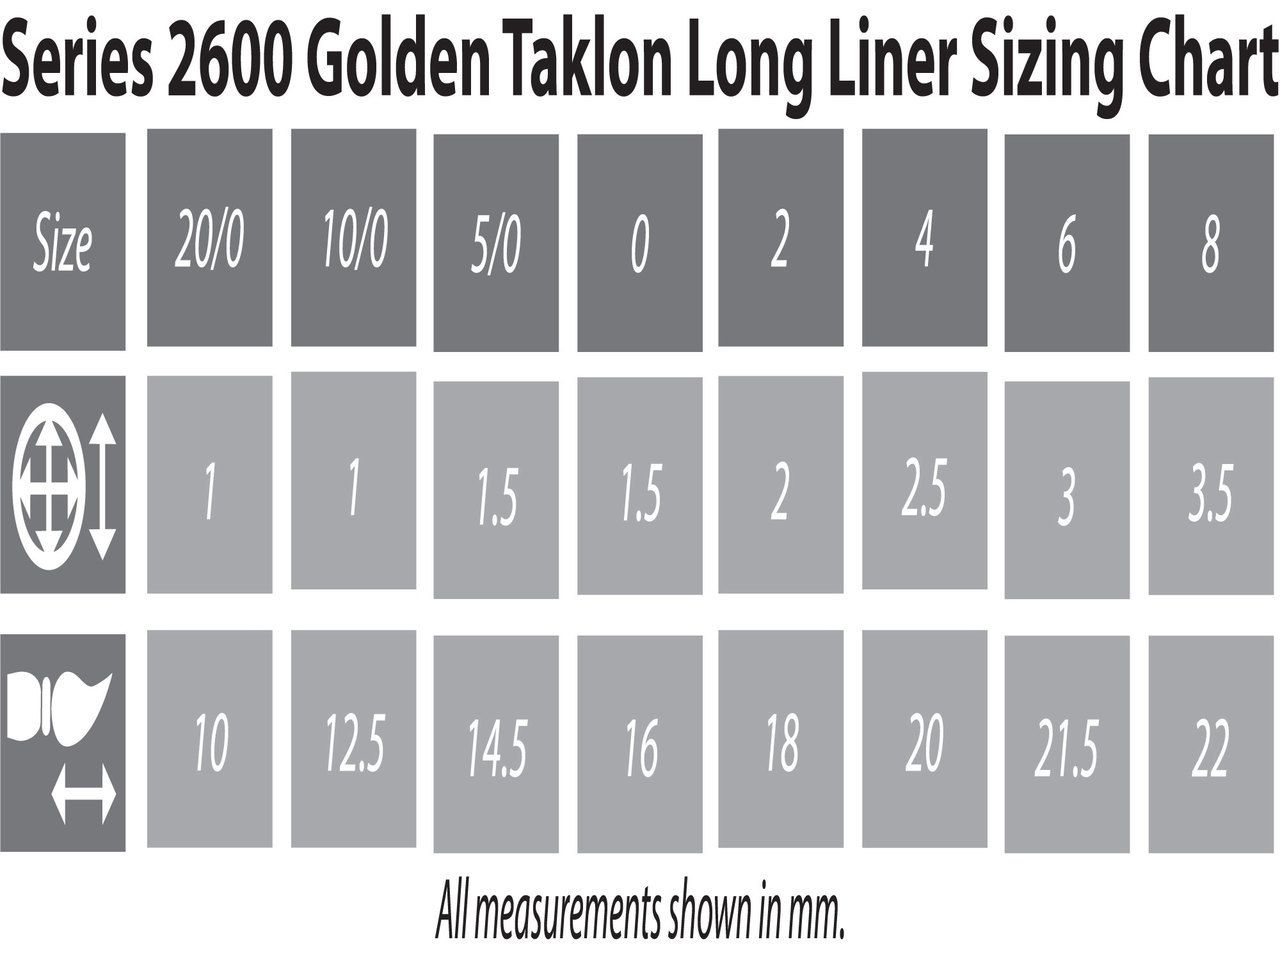 Zem Brush 2600 Golden Taklon Synthetic Long 4 - RPG - Mercado RPG